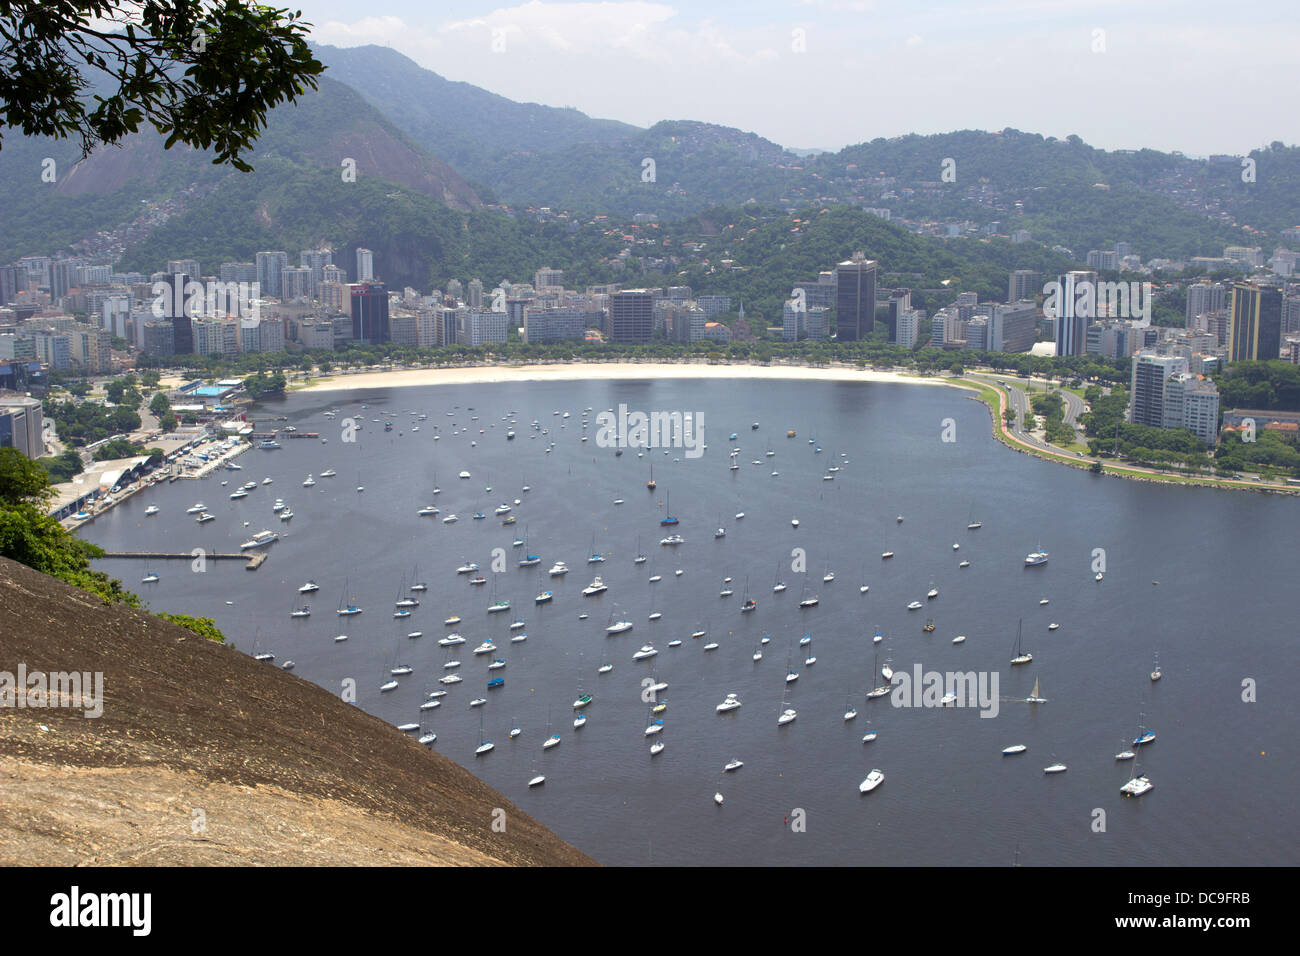 View from the Sugarloaf of Rio de Janeiro, Brazil, February 2013. Stock Photo